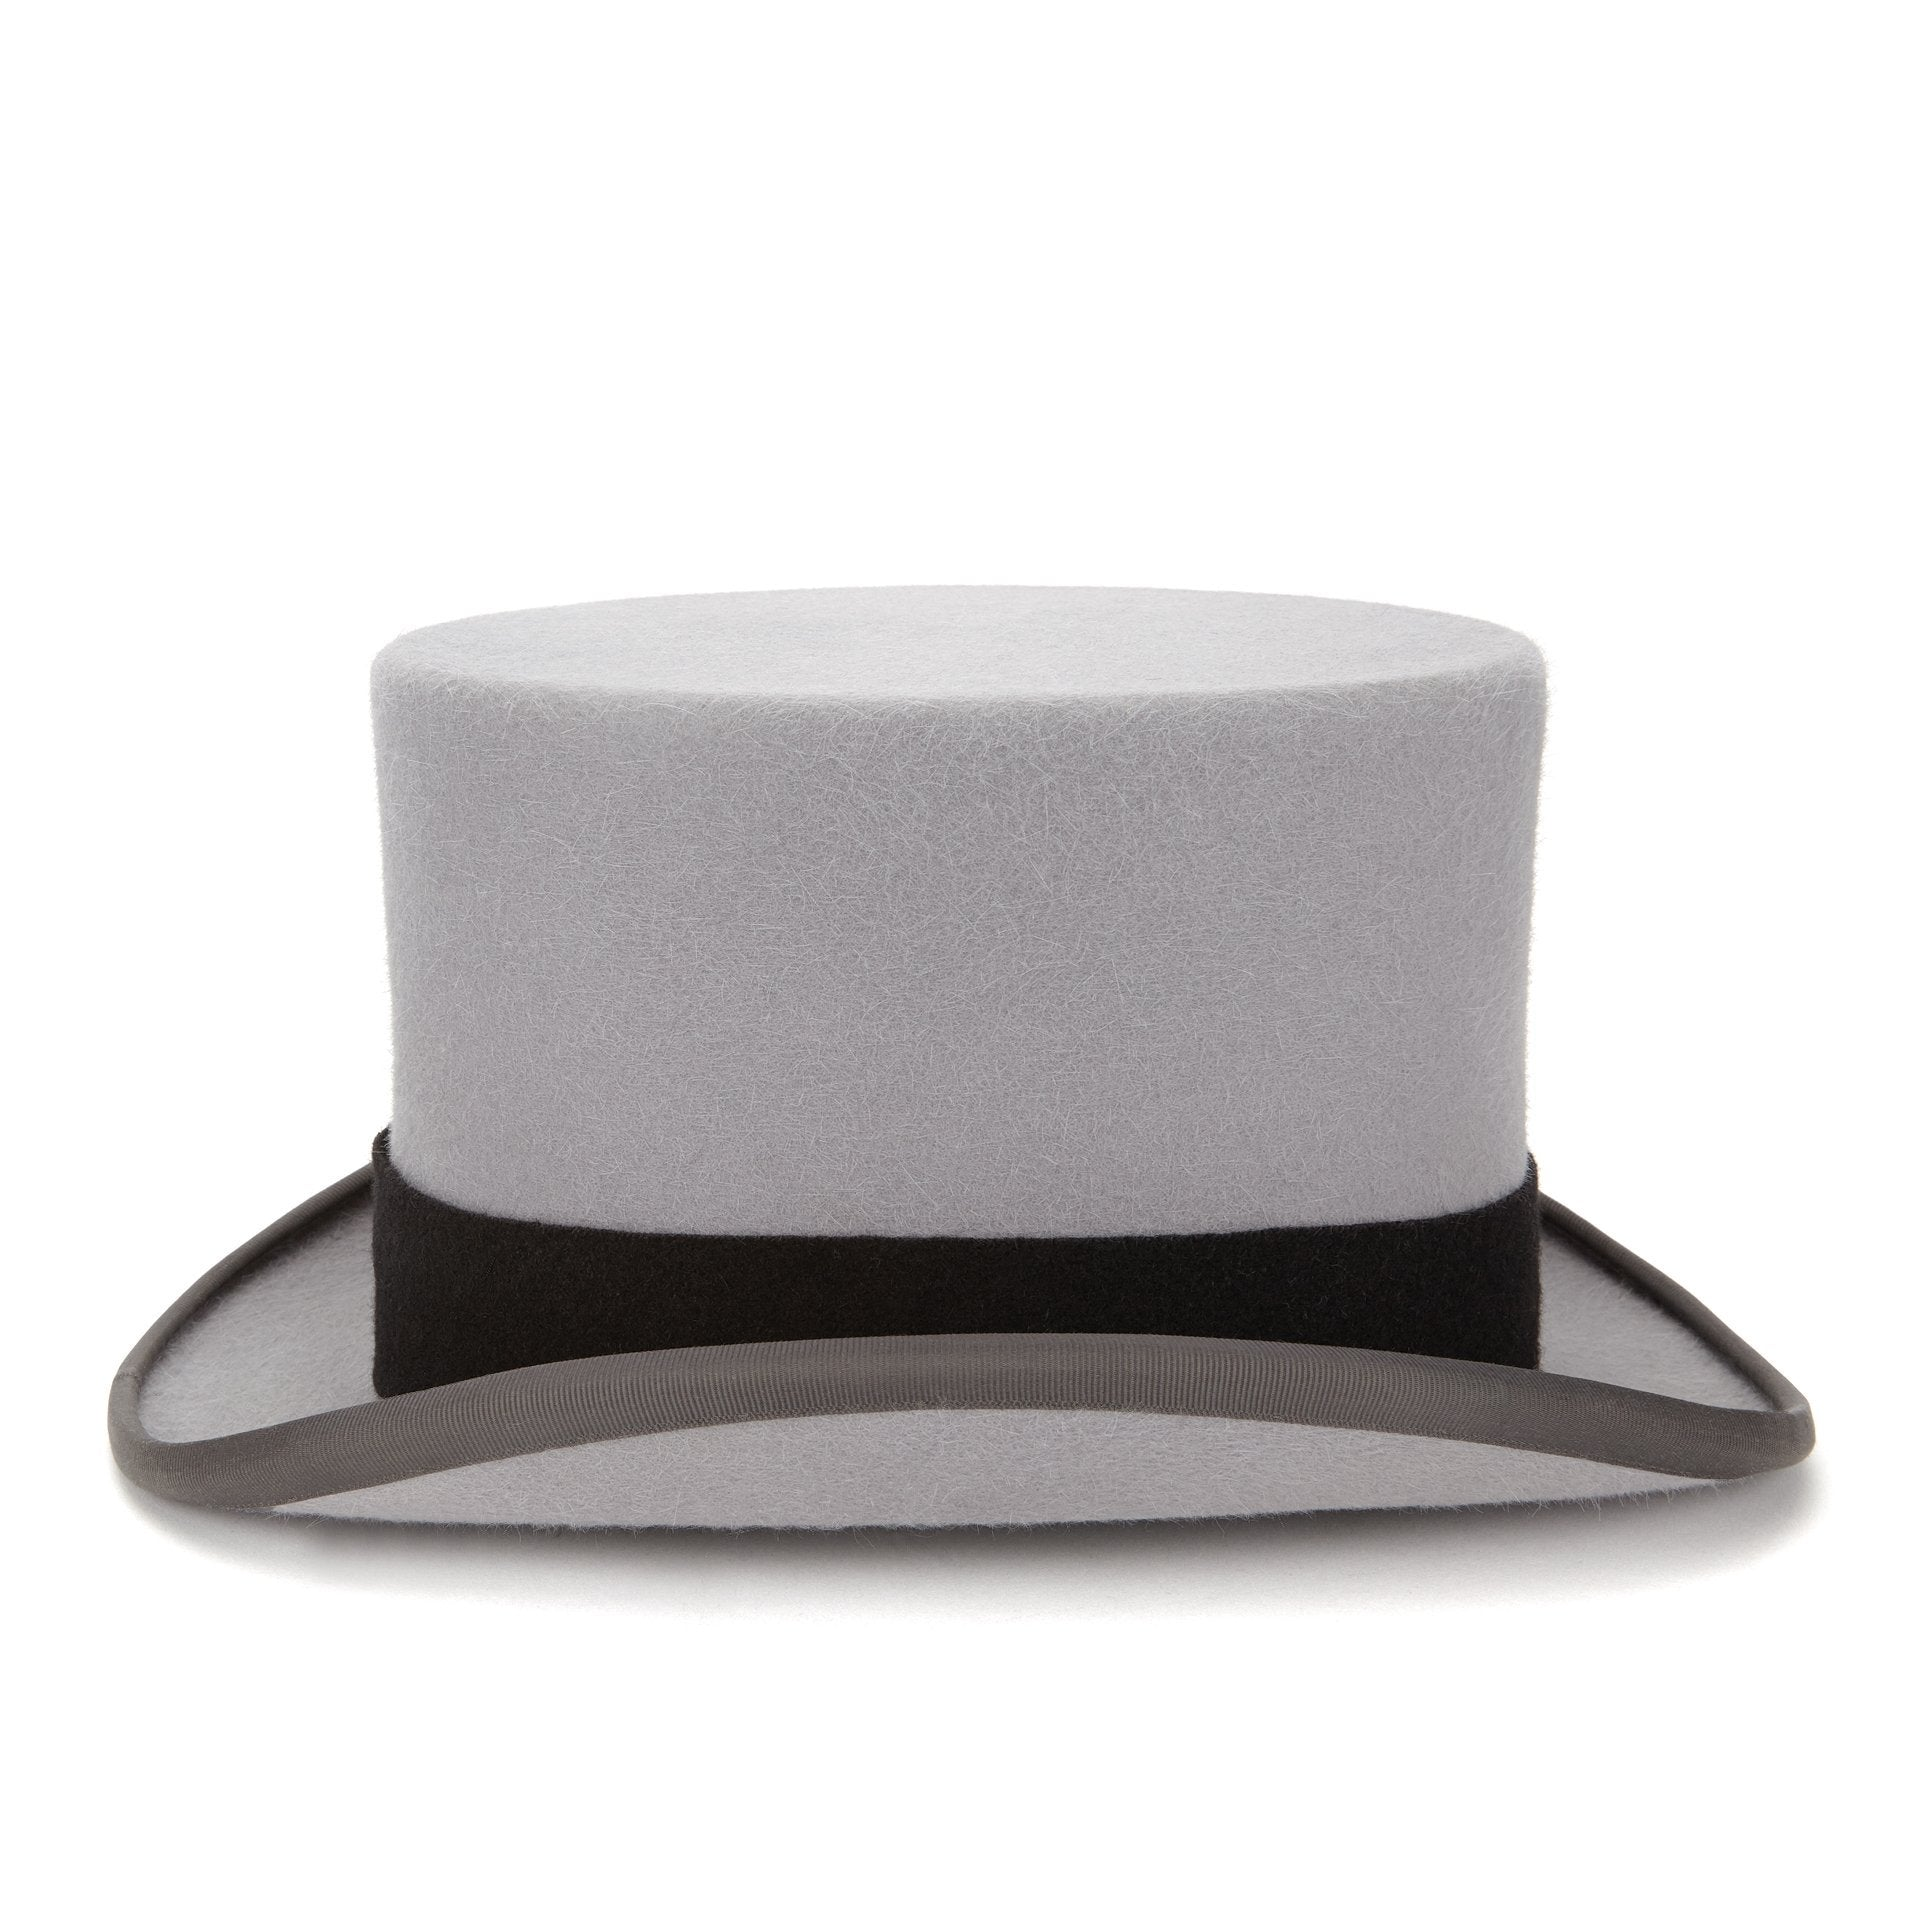 Ascot top hat - Top Hats & Cokes (Bowler hats) - Lock & Co. Hatters London UK